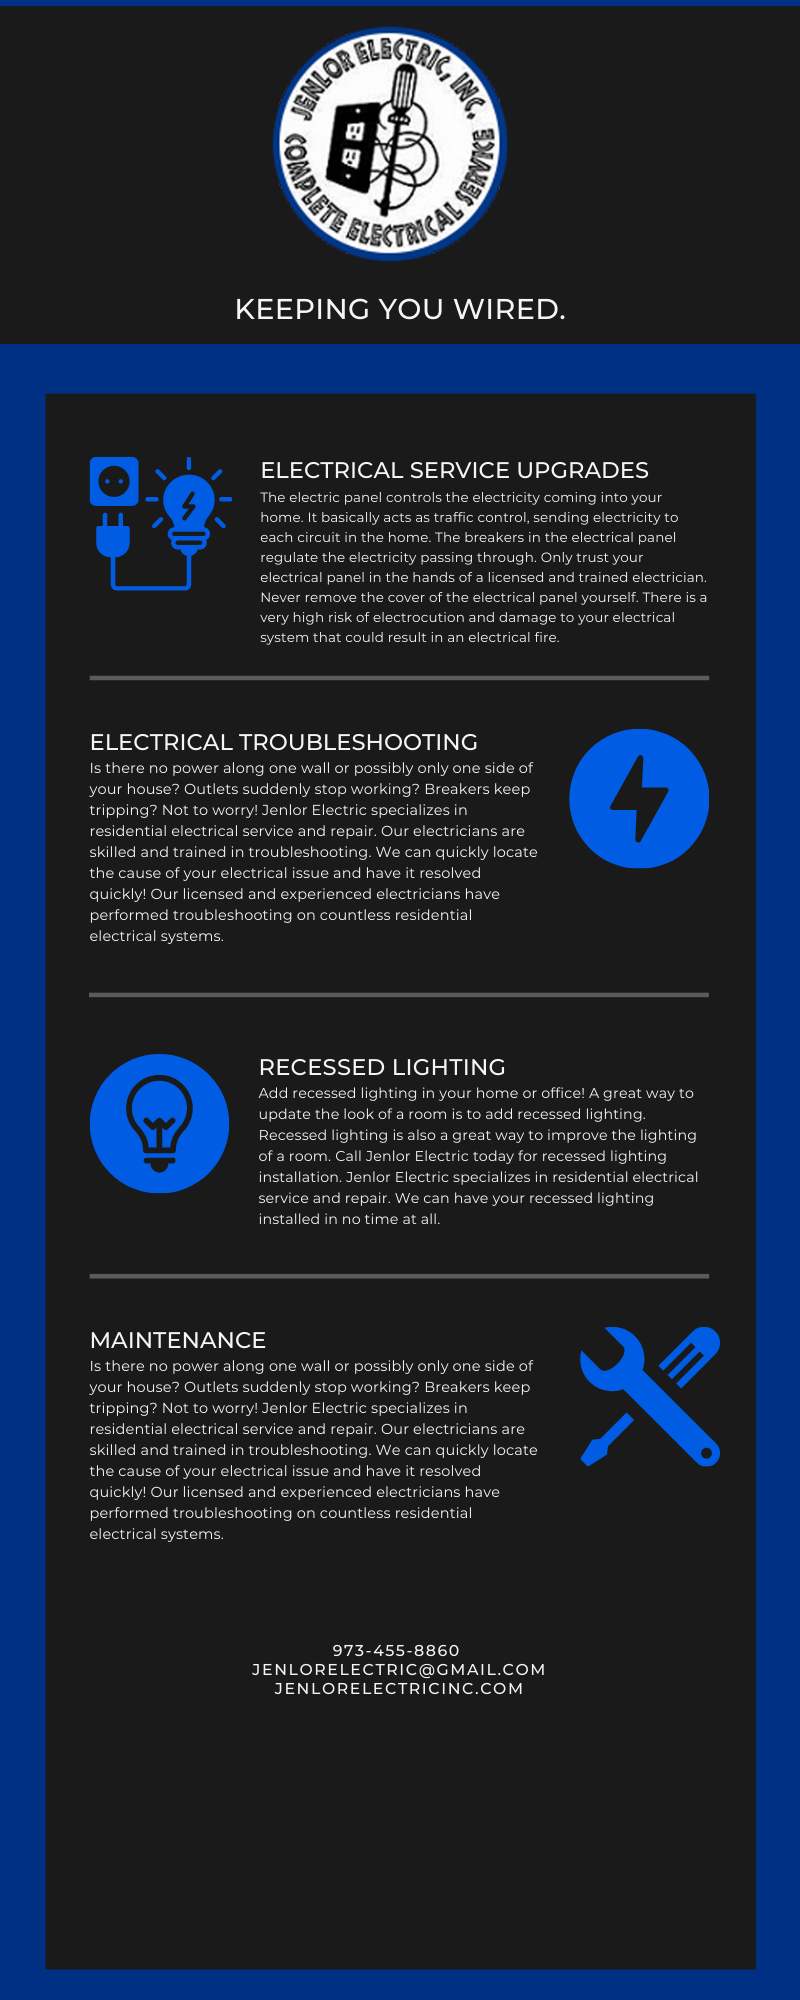 Electrical Services to Keep Your Future Bright! 3